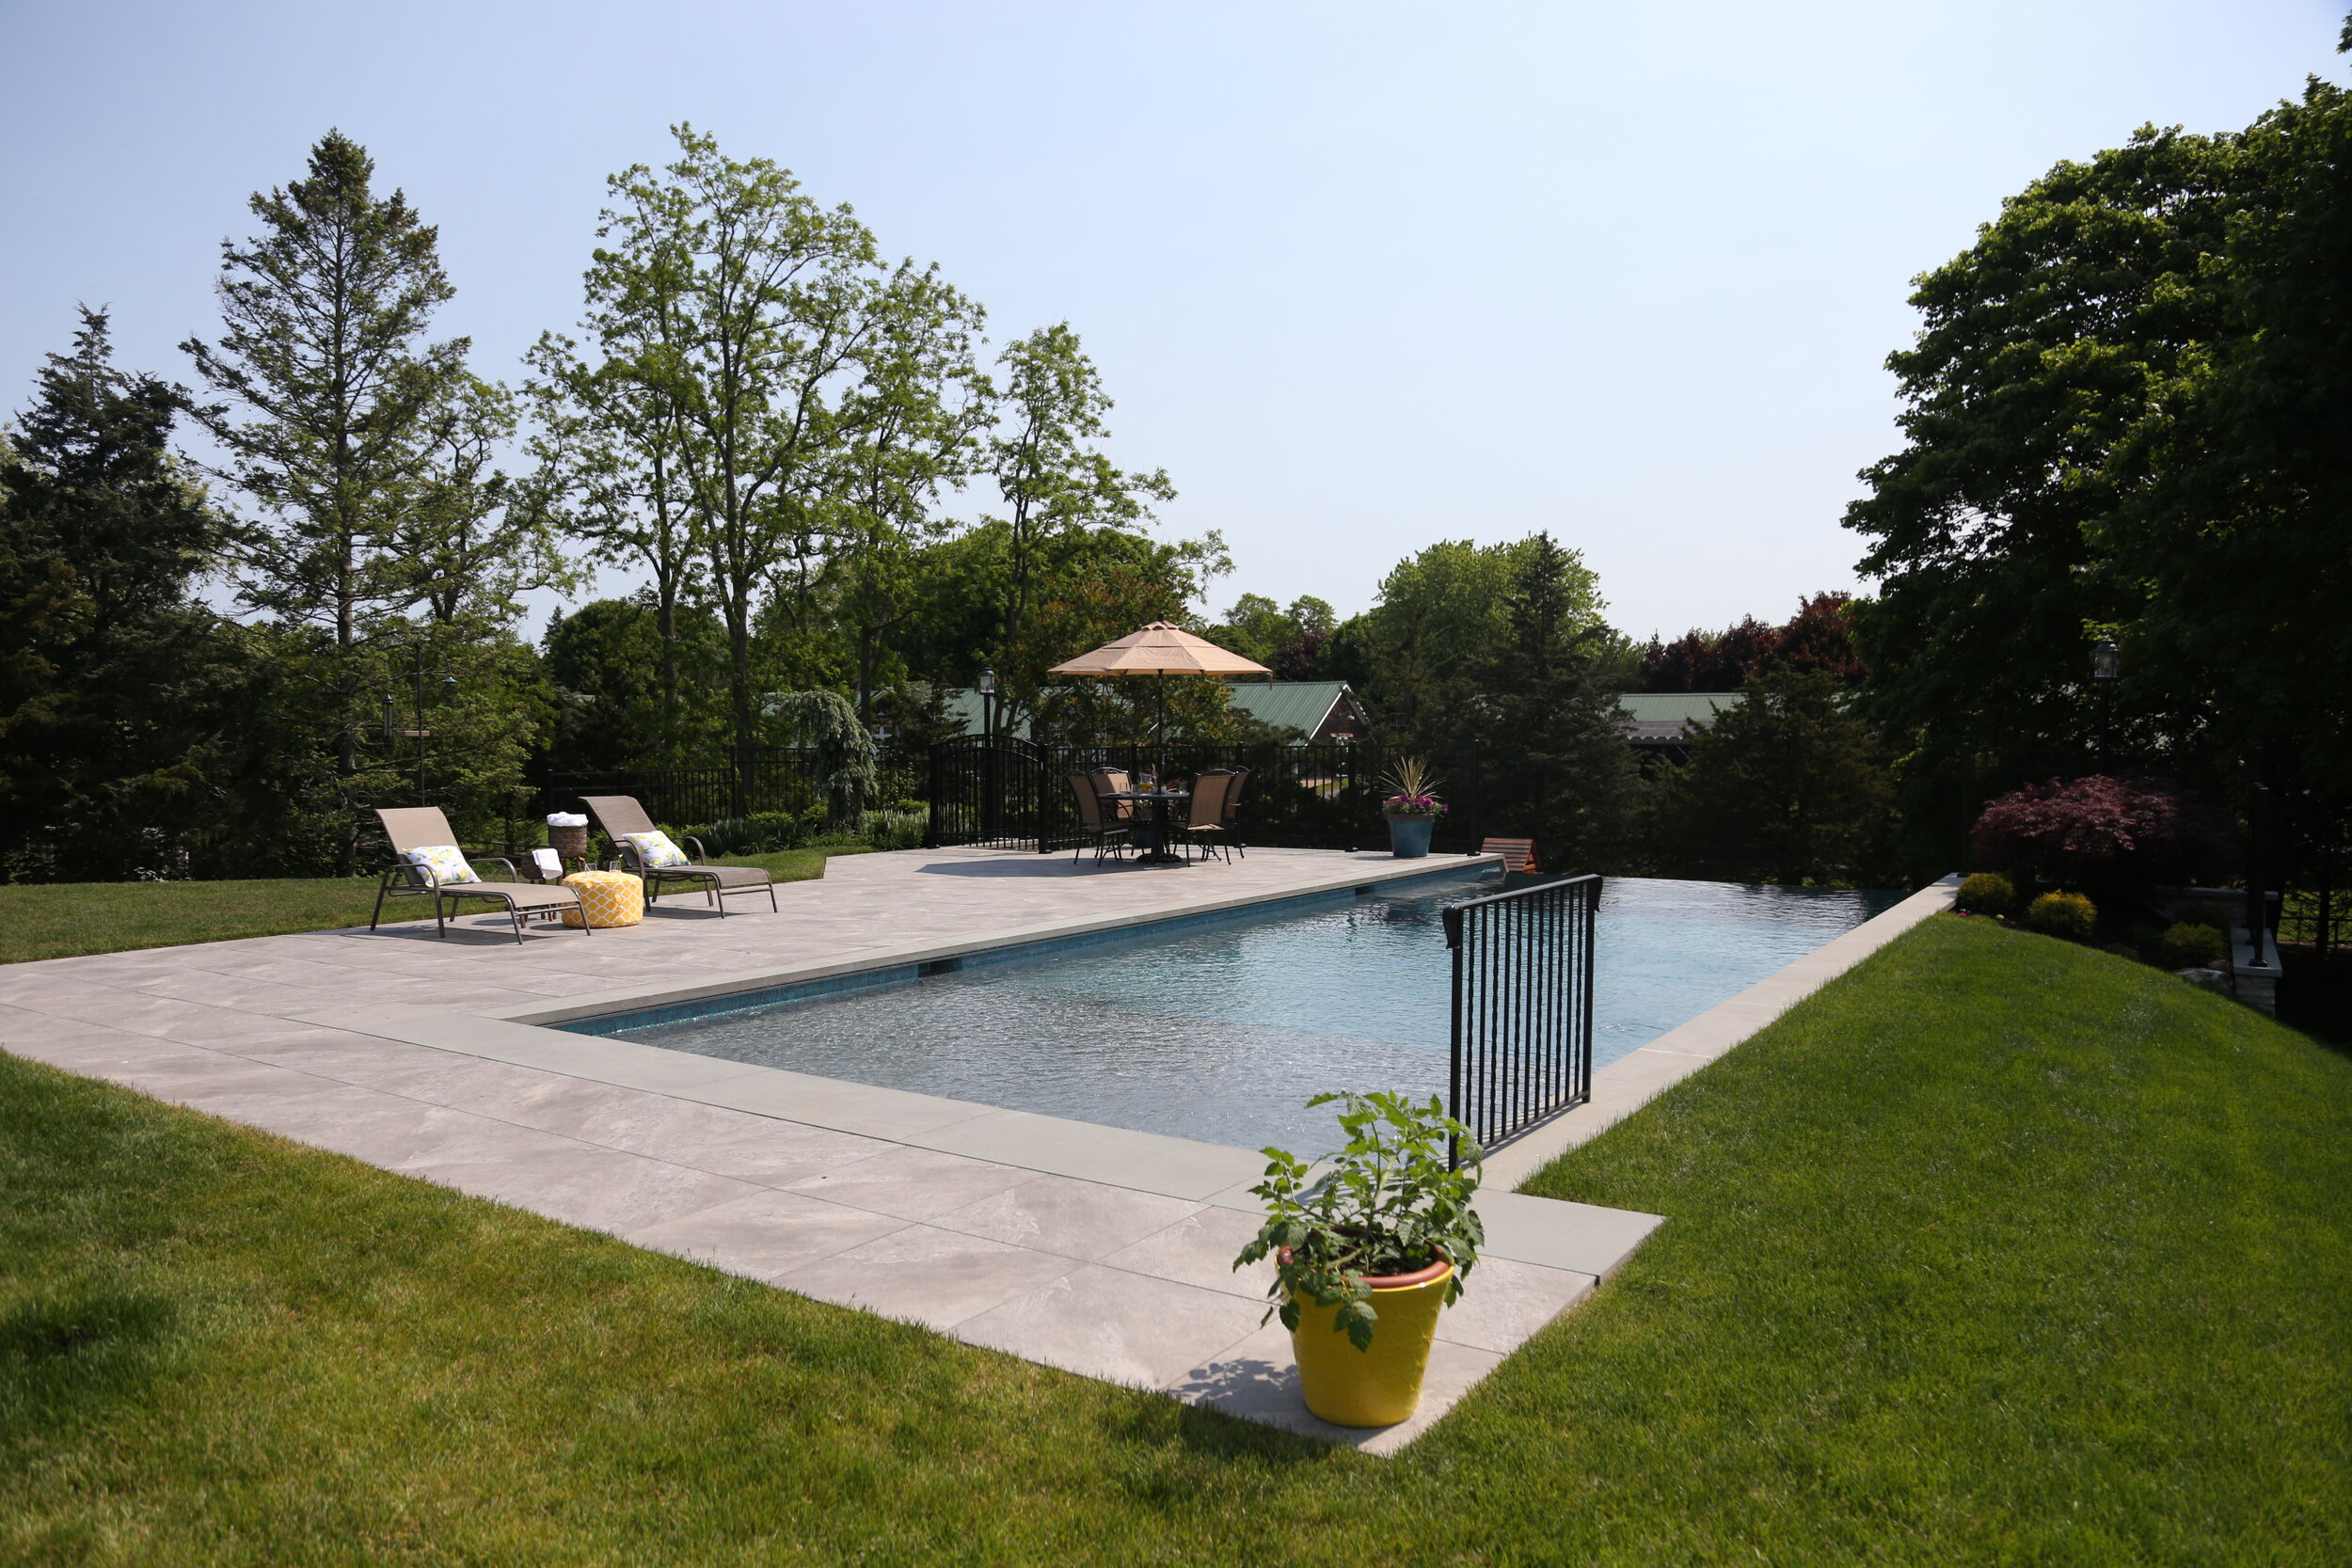 4 Infinity Swimming Pool Designs for Your Hauppauge, NY, Backyard